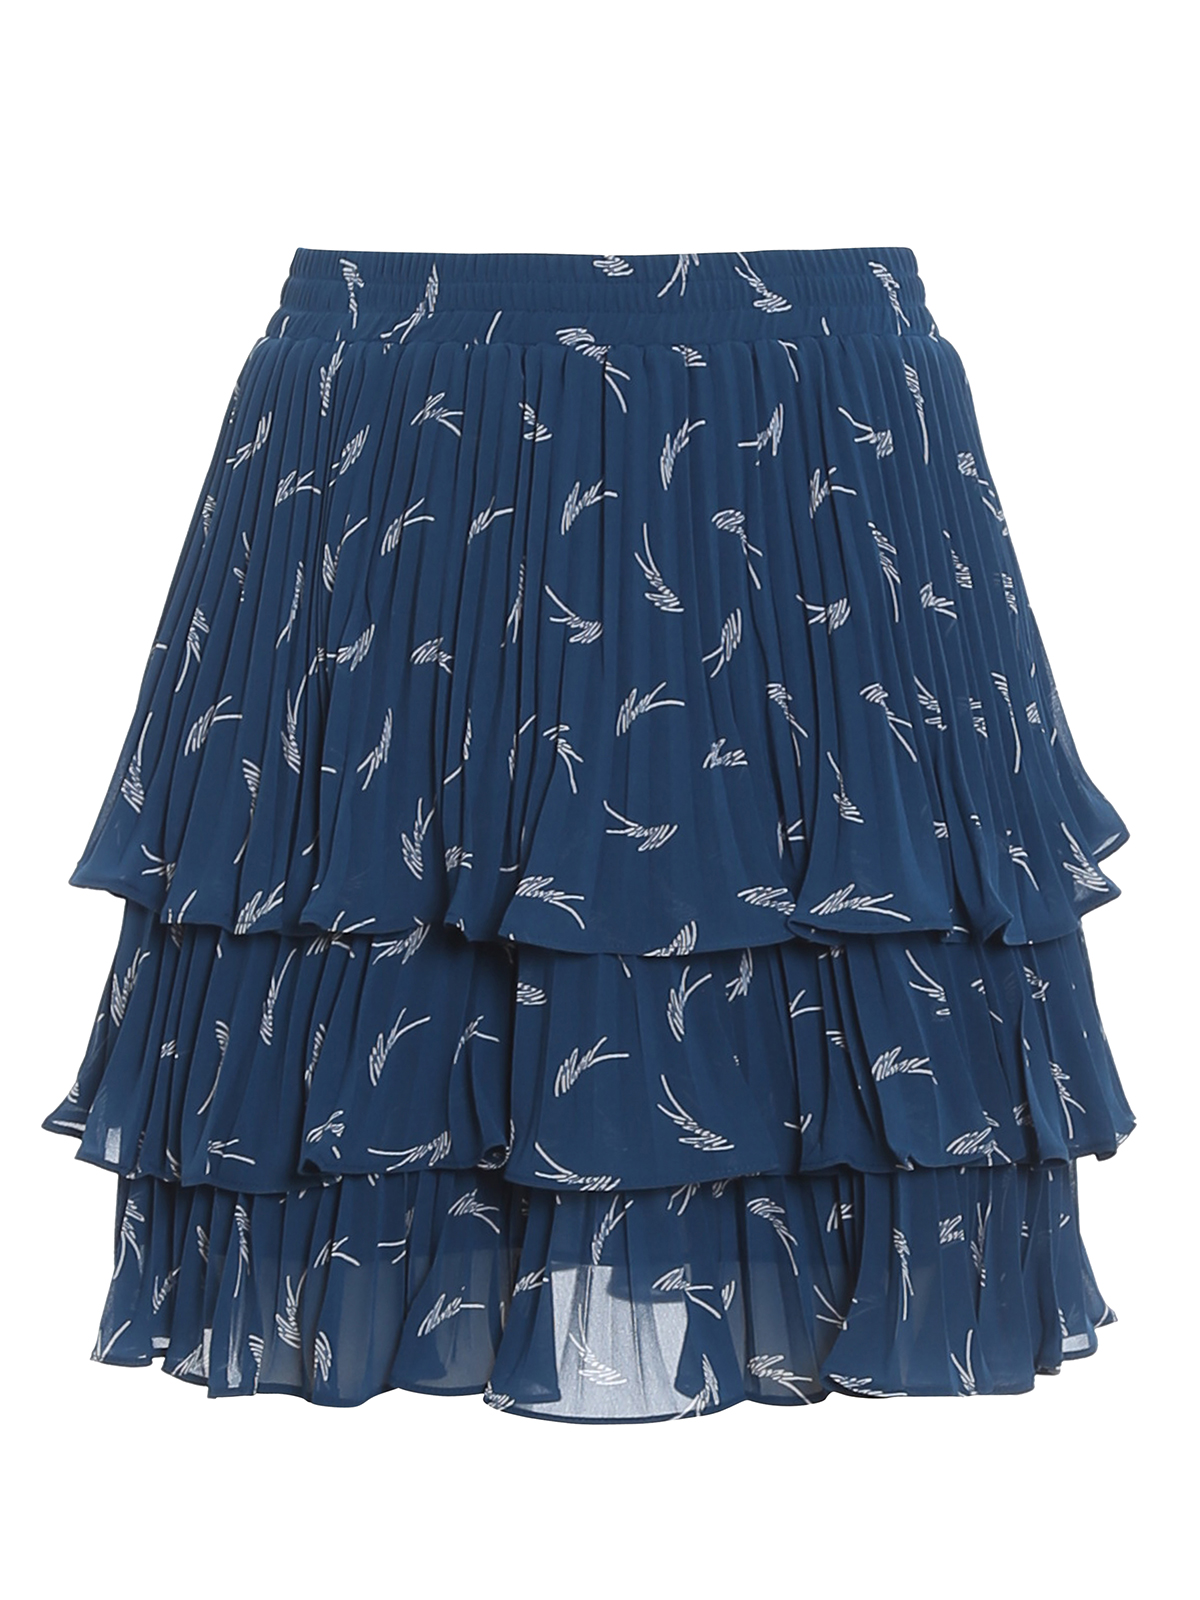 Michael Kors SIGNATURE LOGO RUFFLED SKIRT